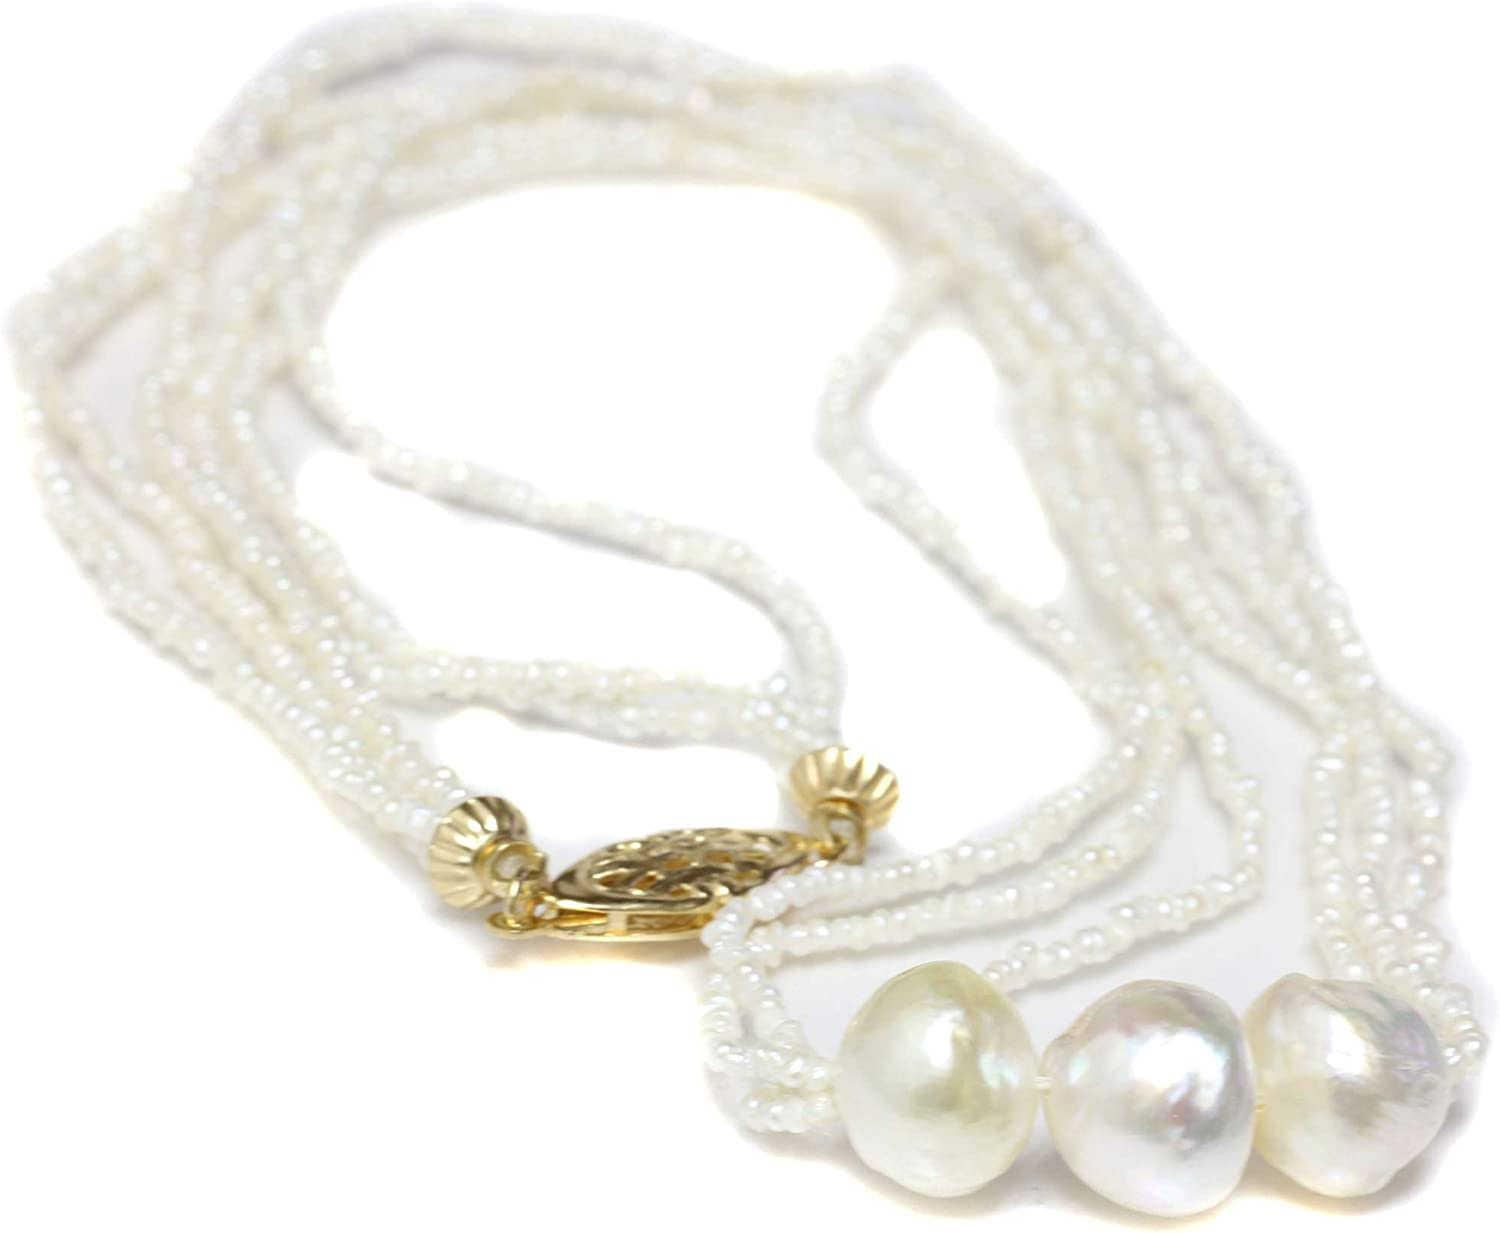 Cultured pearl necklace Gold necklace 3 real pearls Trio of white mother-of-pearl pearls June birth stone Delicate gold necklace